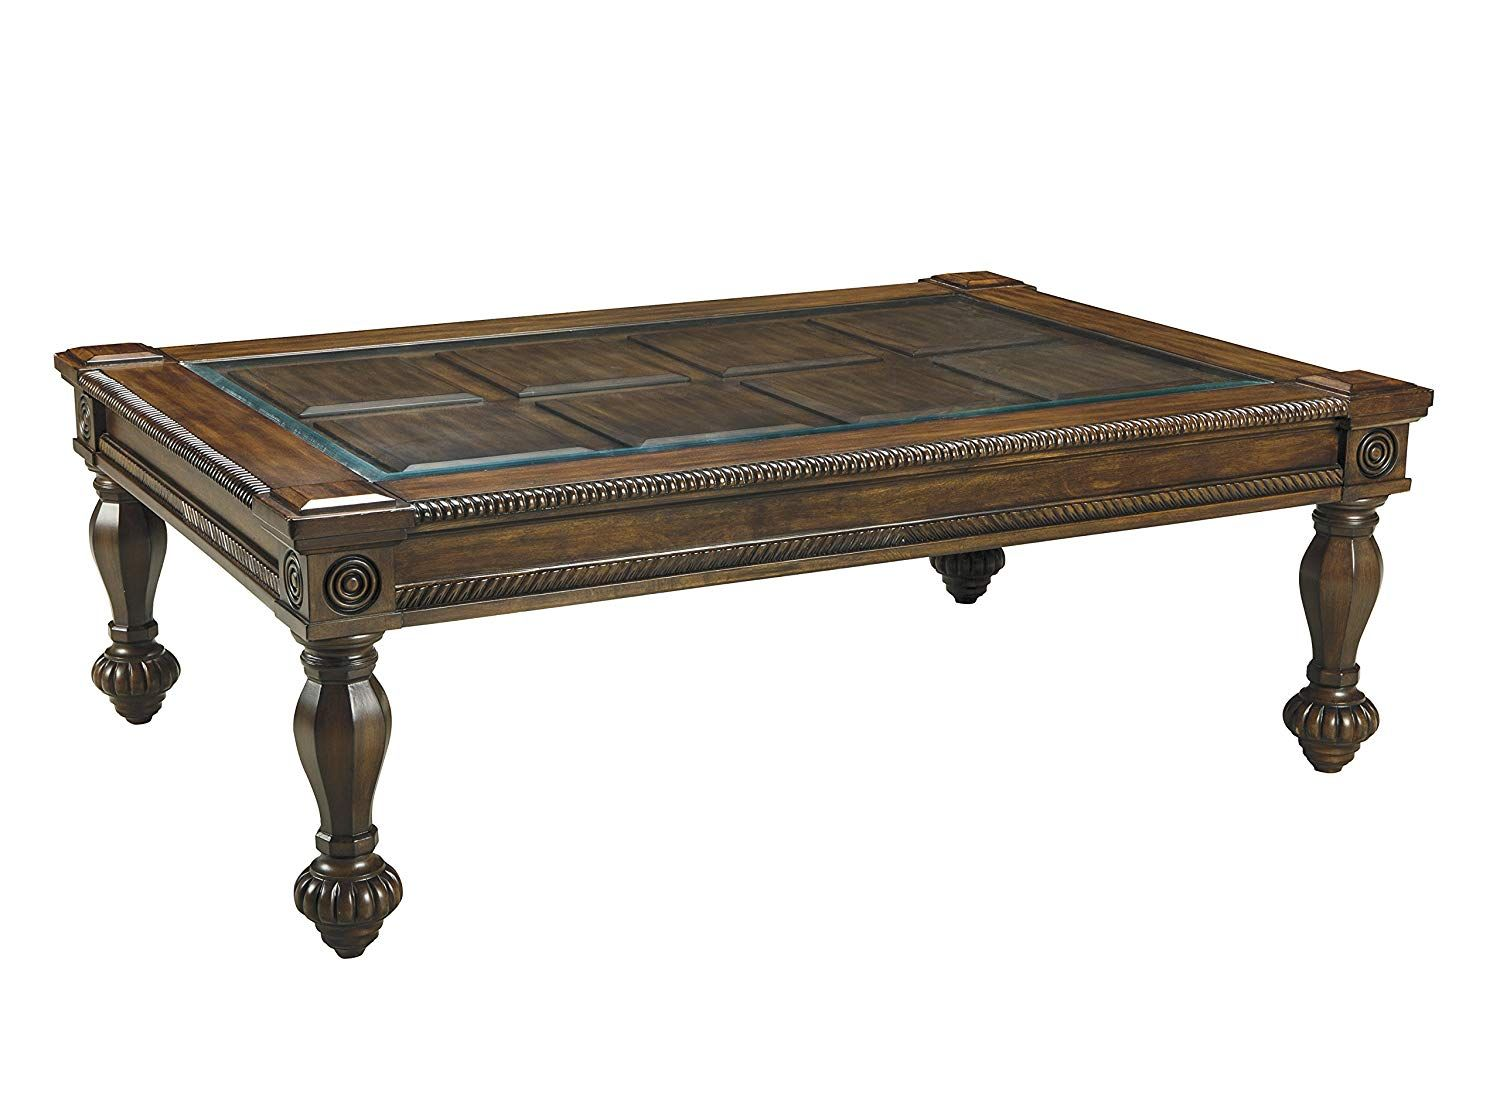 Ashley Furniture Signature Design Mantera Coffee Table Cocktail Height Rustic Style Rectangular Dark Brown With B Coffee Table Table Signature Design [ 1106 x 1500 Pixel ]